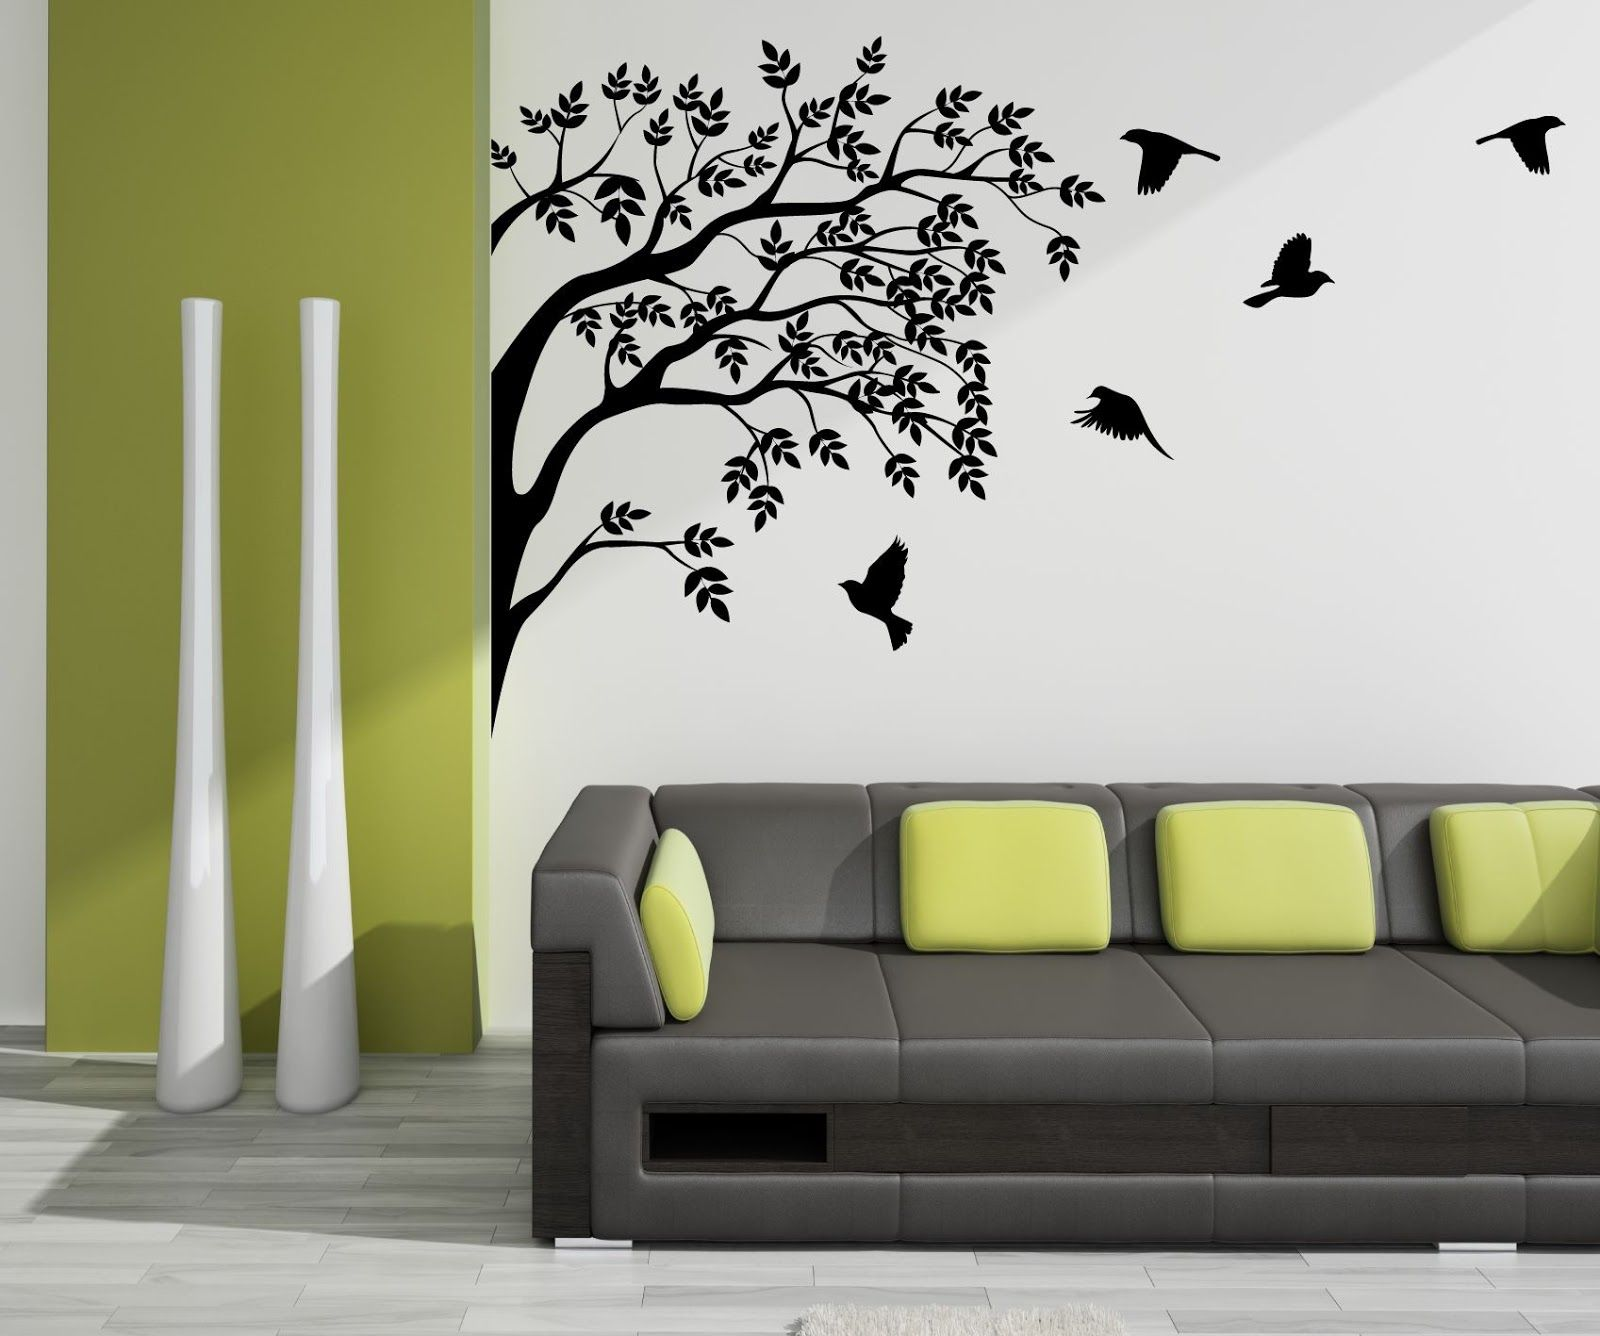 Wall Paintings Graphic Google Search Bedroom Wall Designs